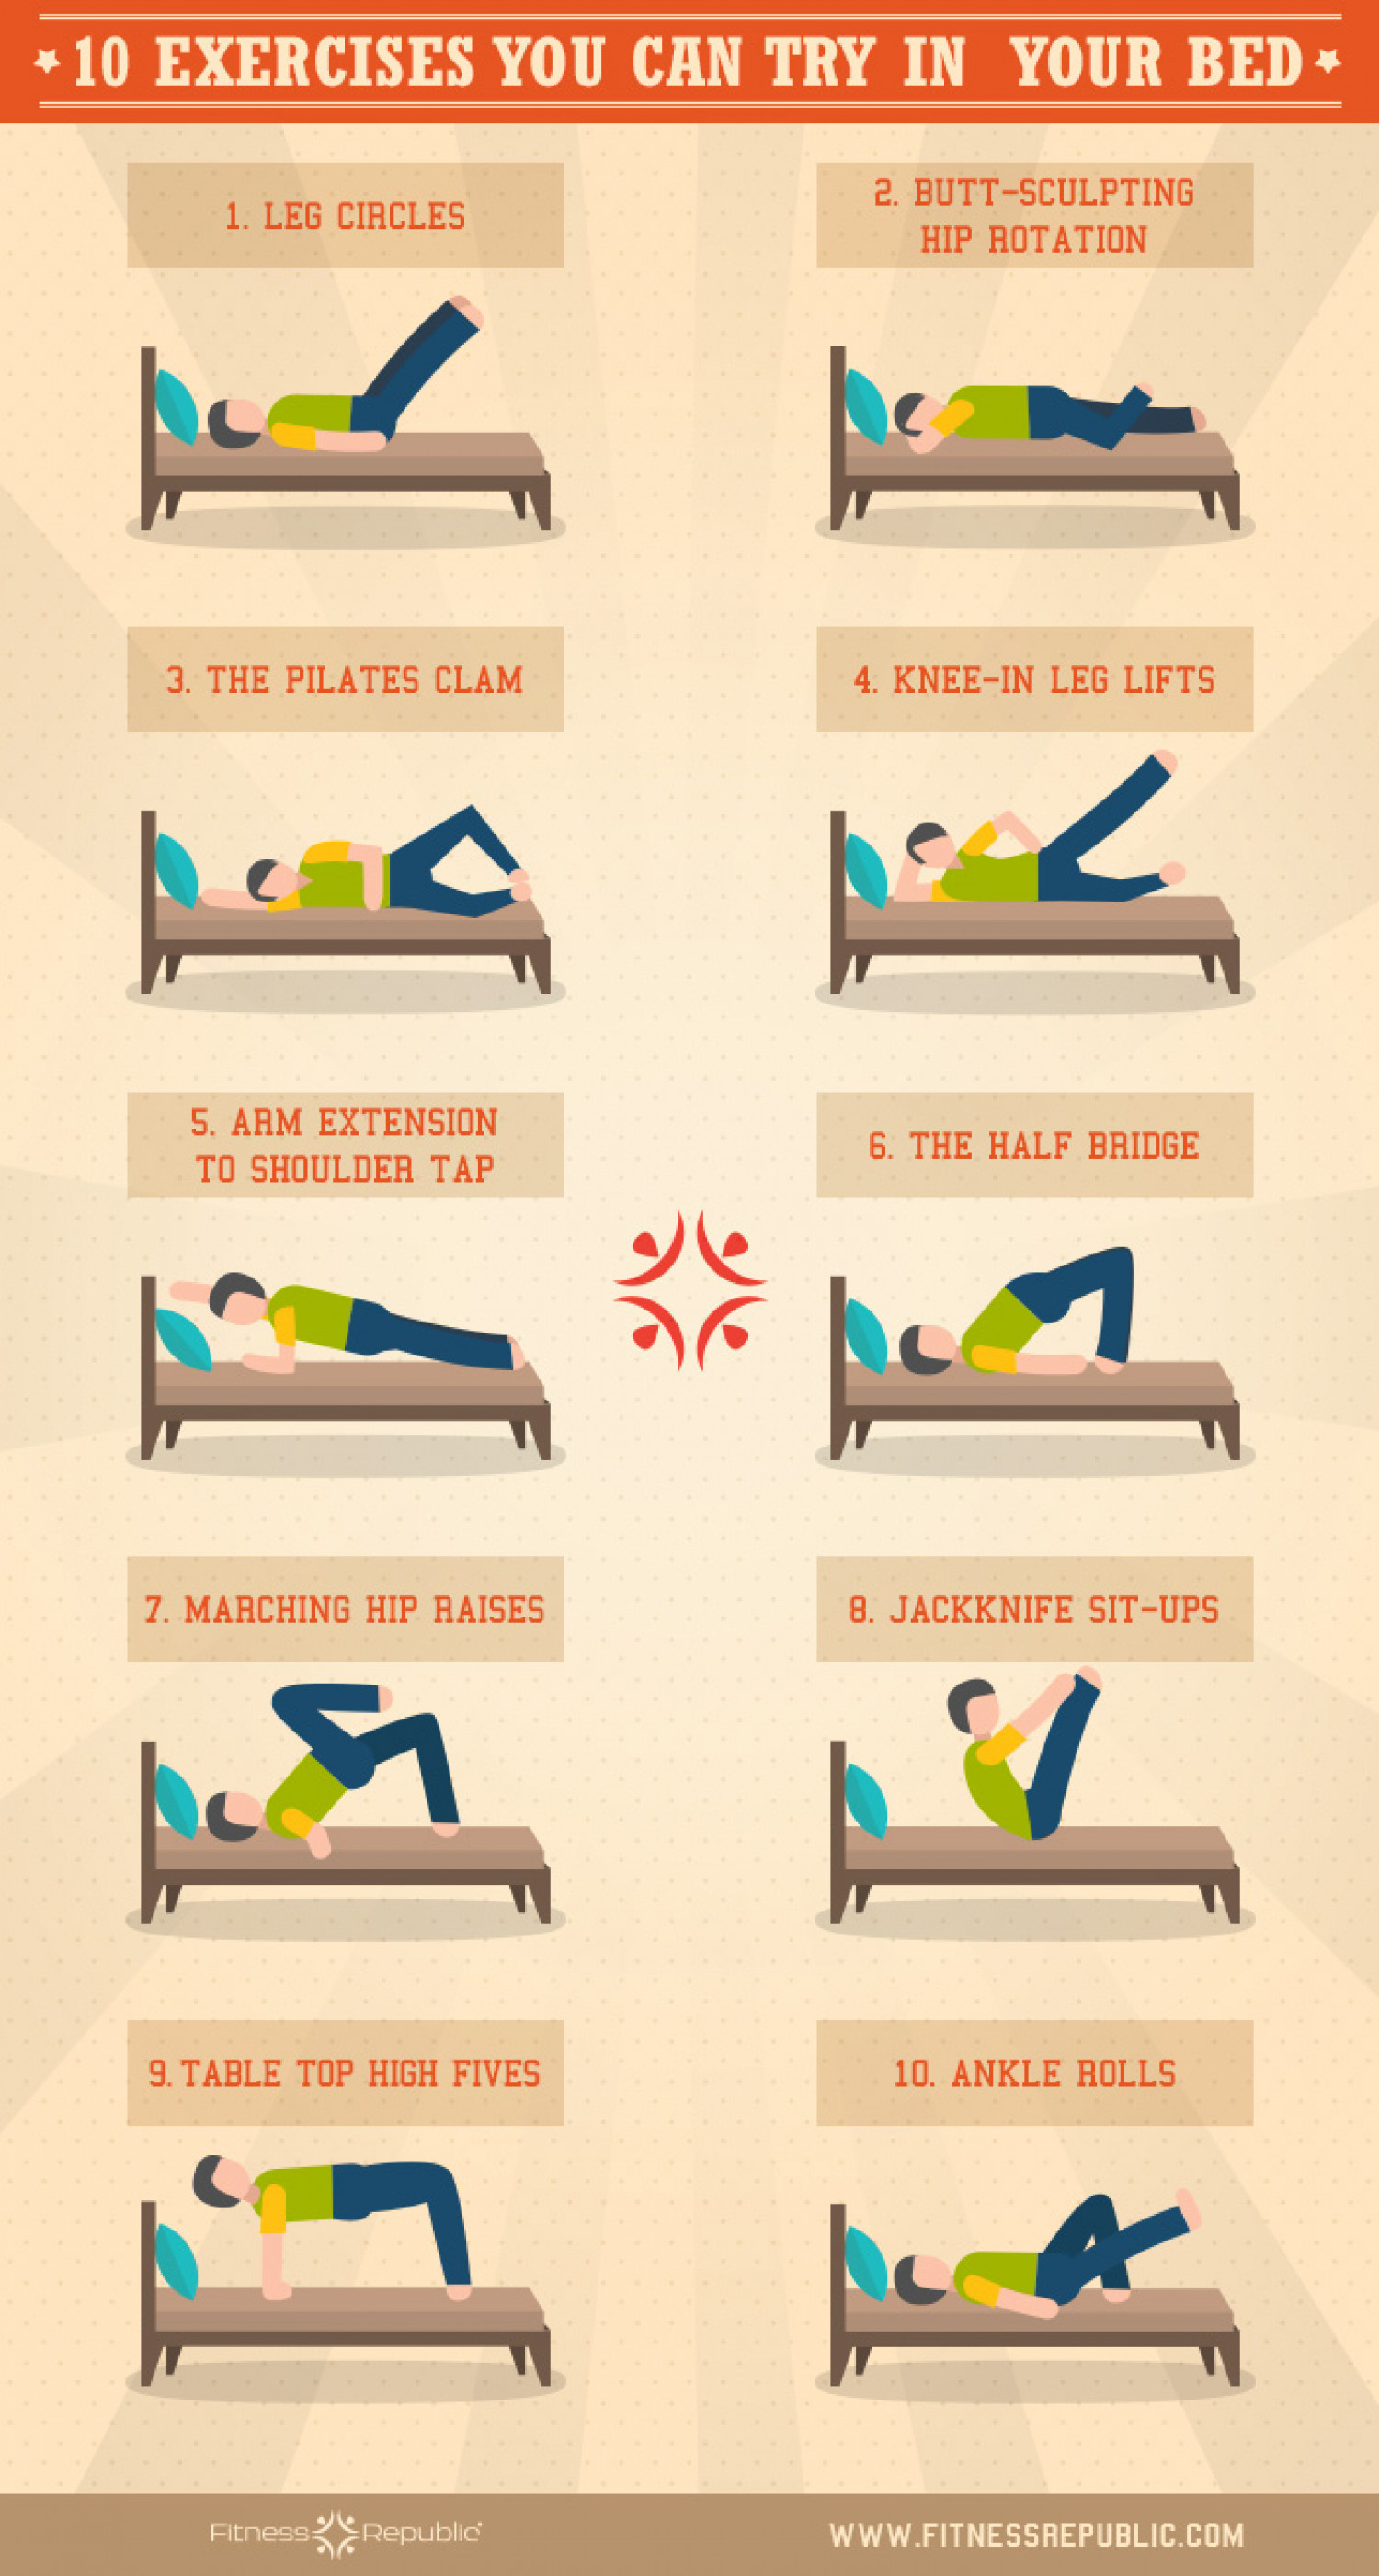 10 Exercises You Can Try In Your Bed Infographic